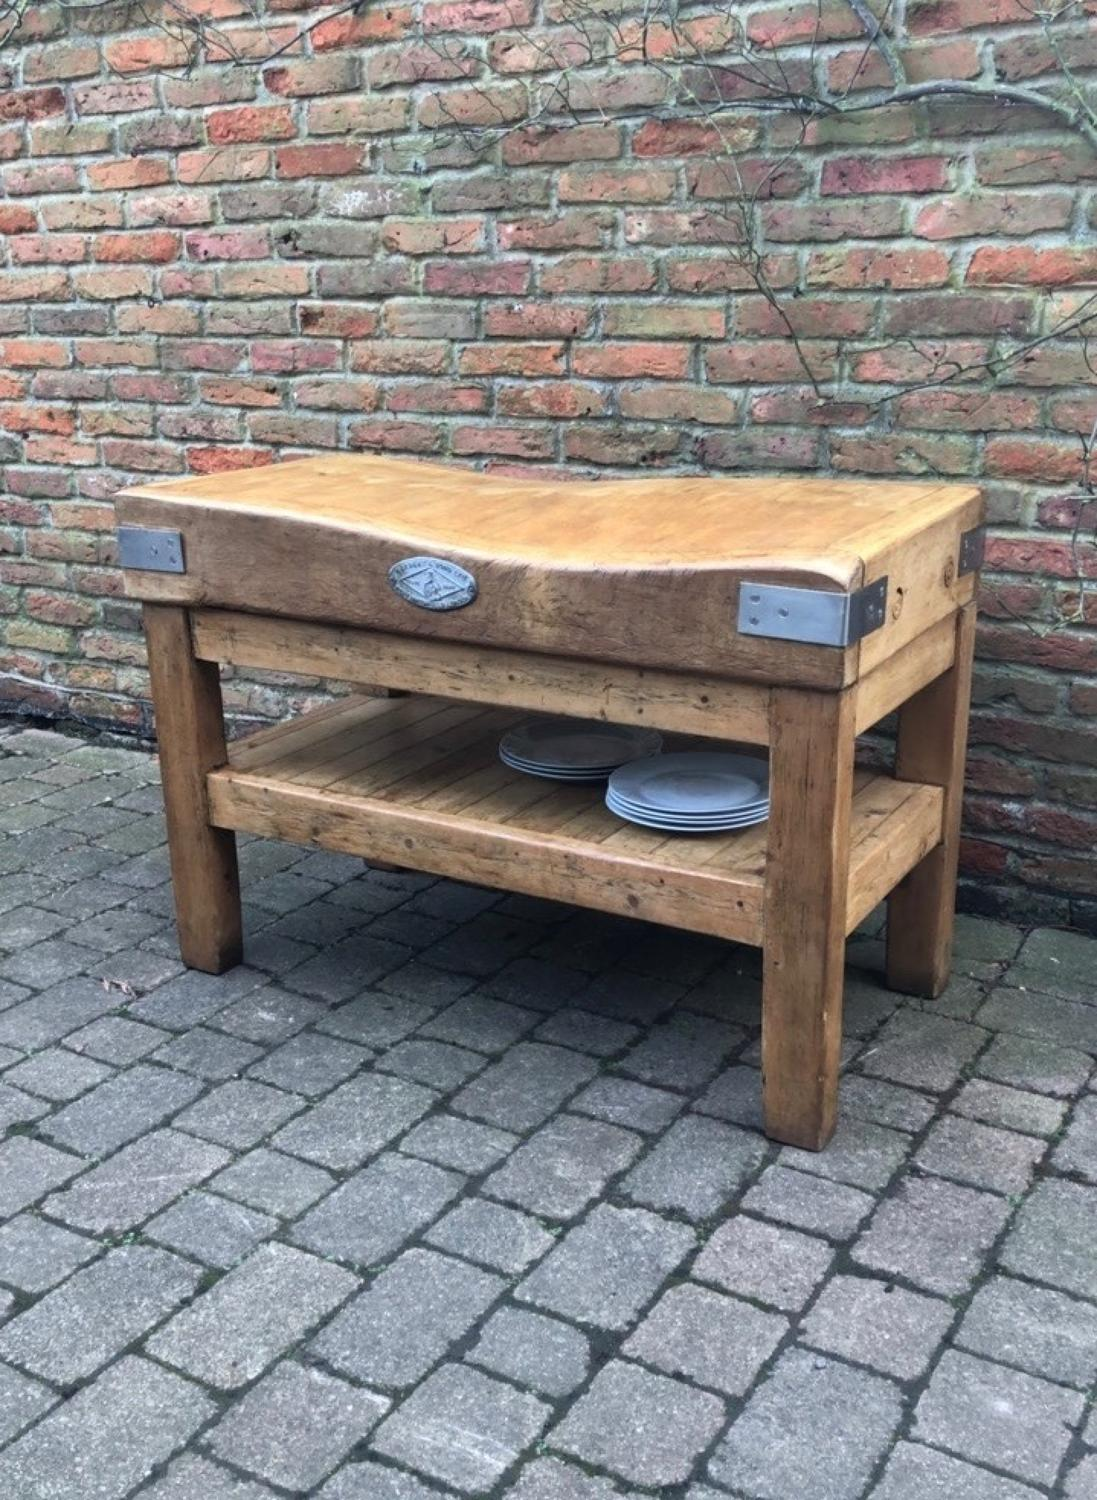 Antique Butchers Block 4' x 2' on Lovely Base with Pot Shelf